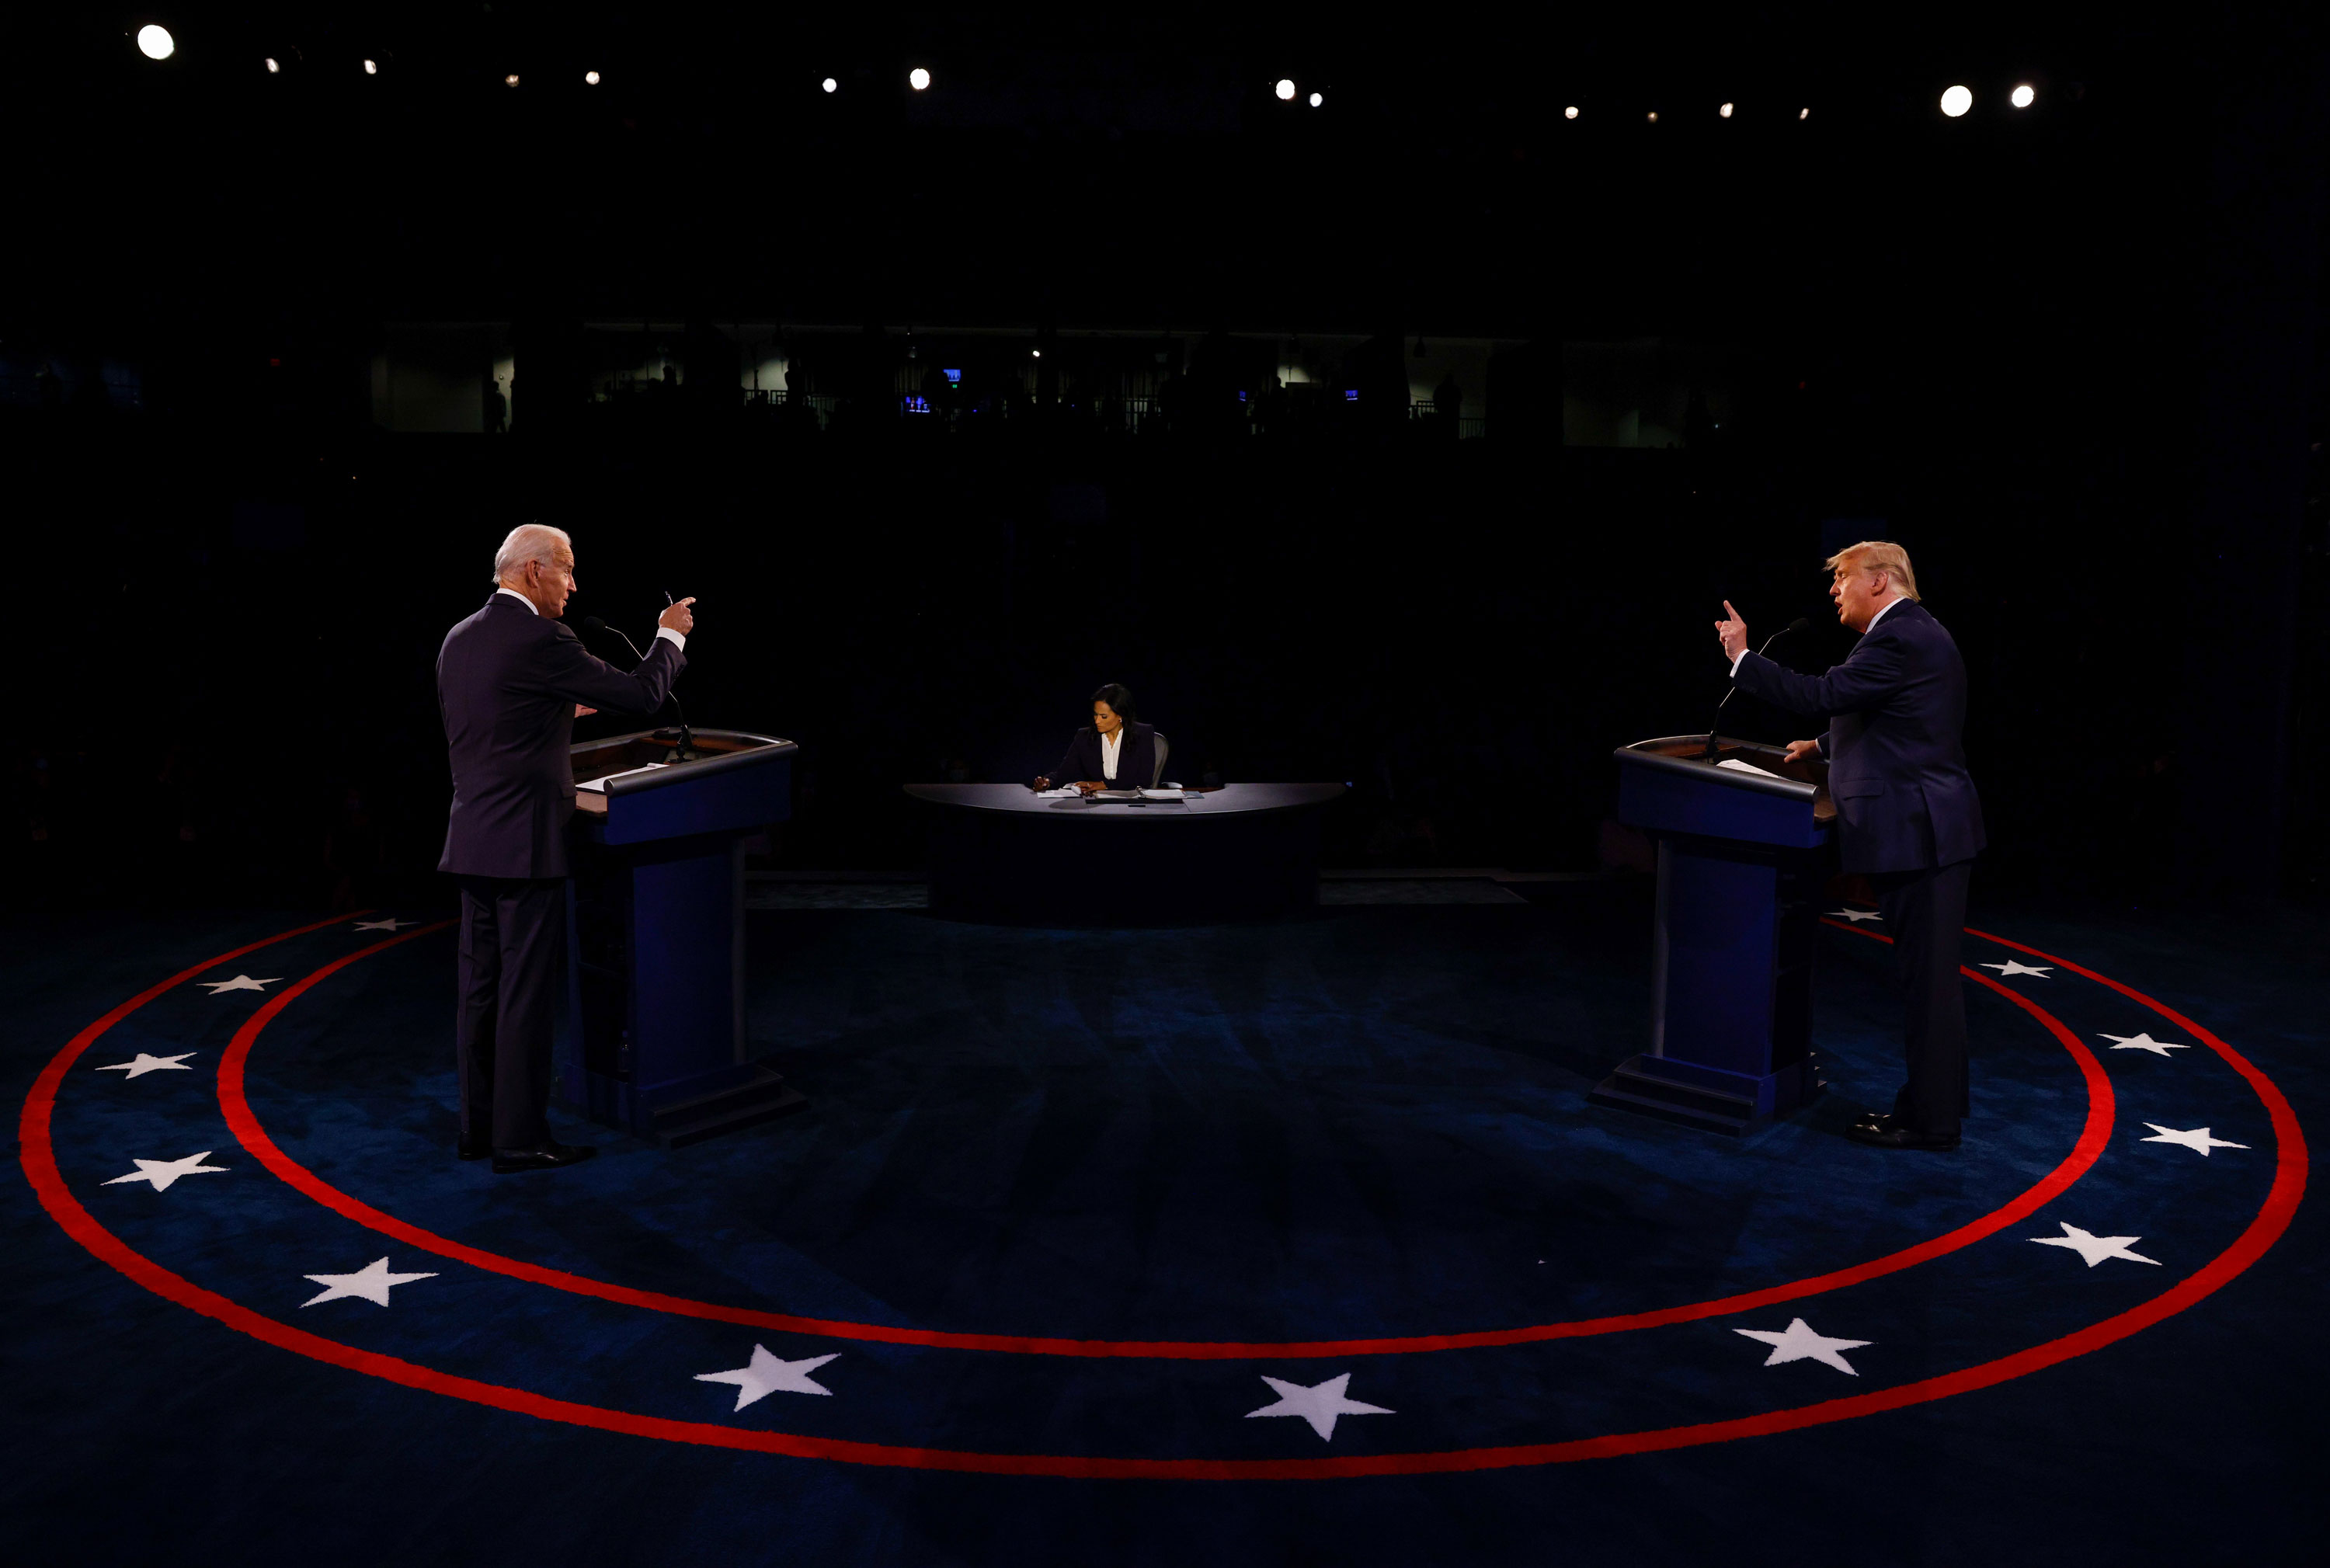 President Donald Trump, right, and Democratic candidate Joe Biden debate each other in Nashville, Tennessee, on October 22. At center is moderator Kristen Welker.